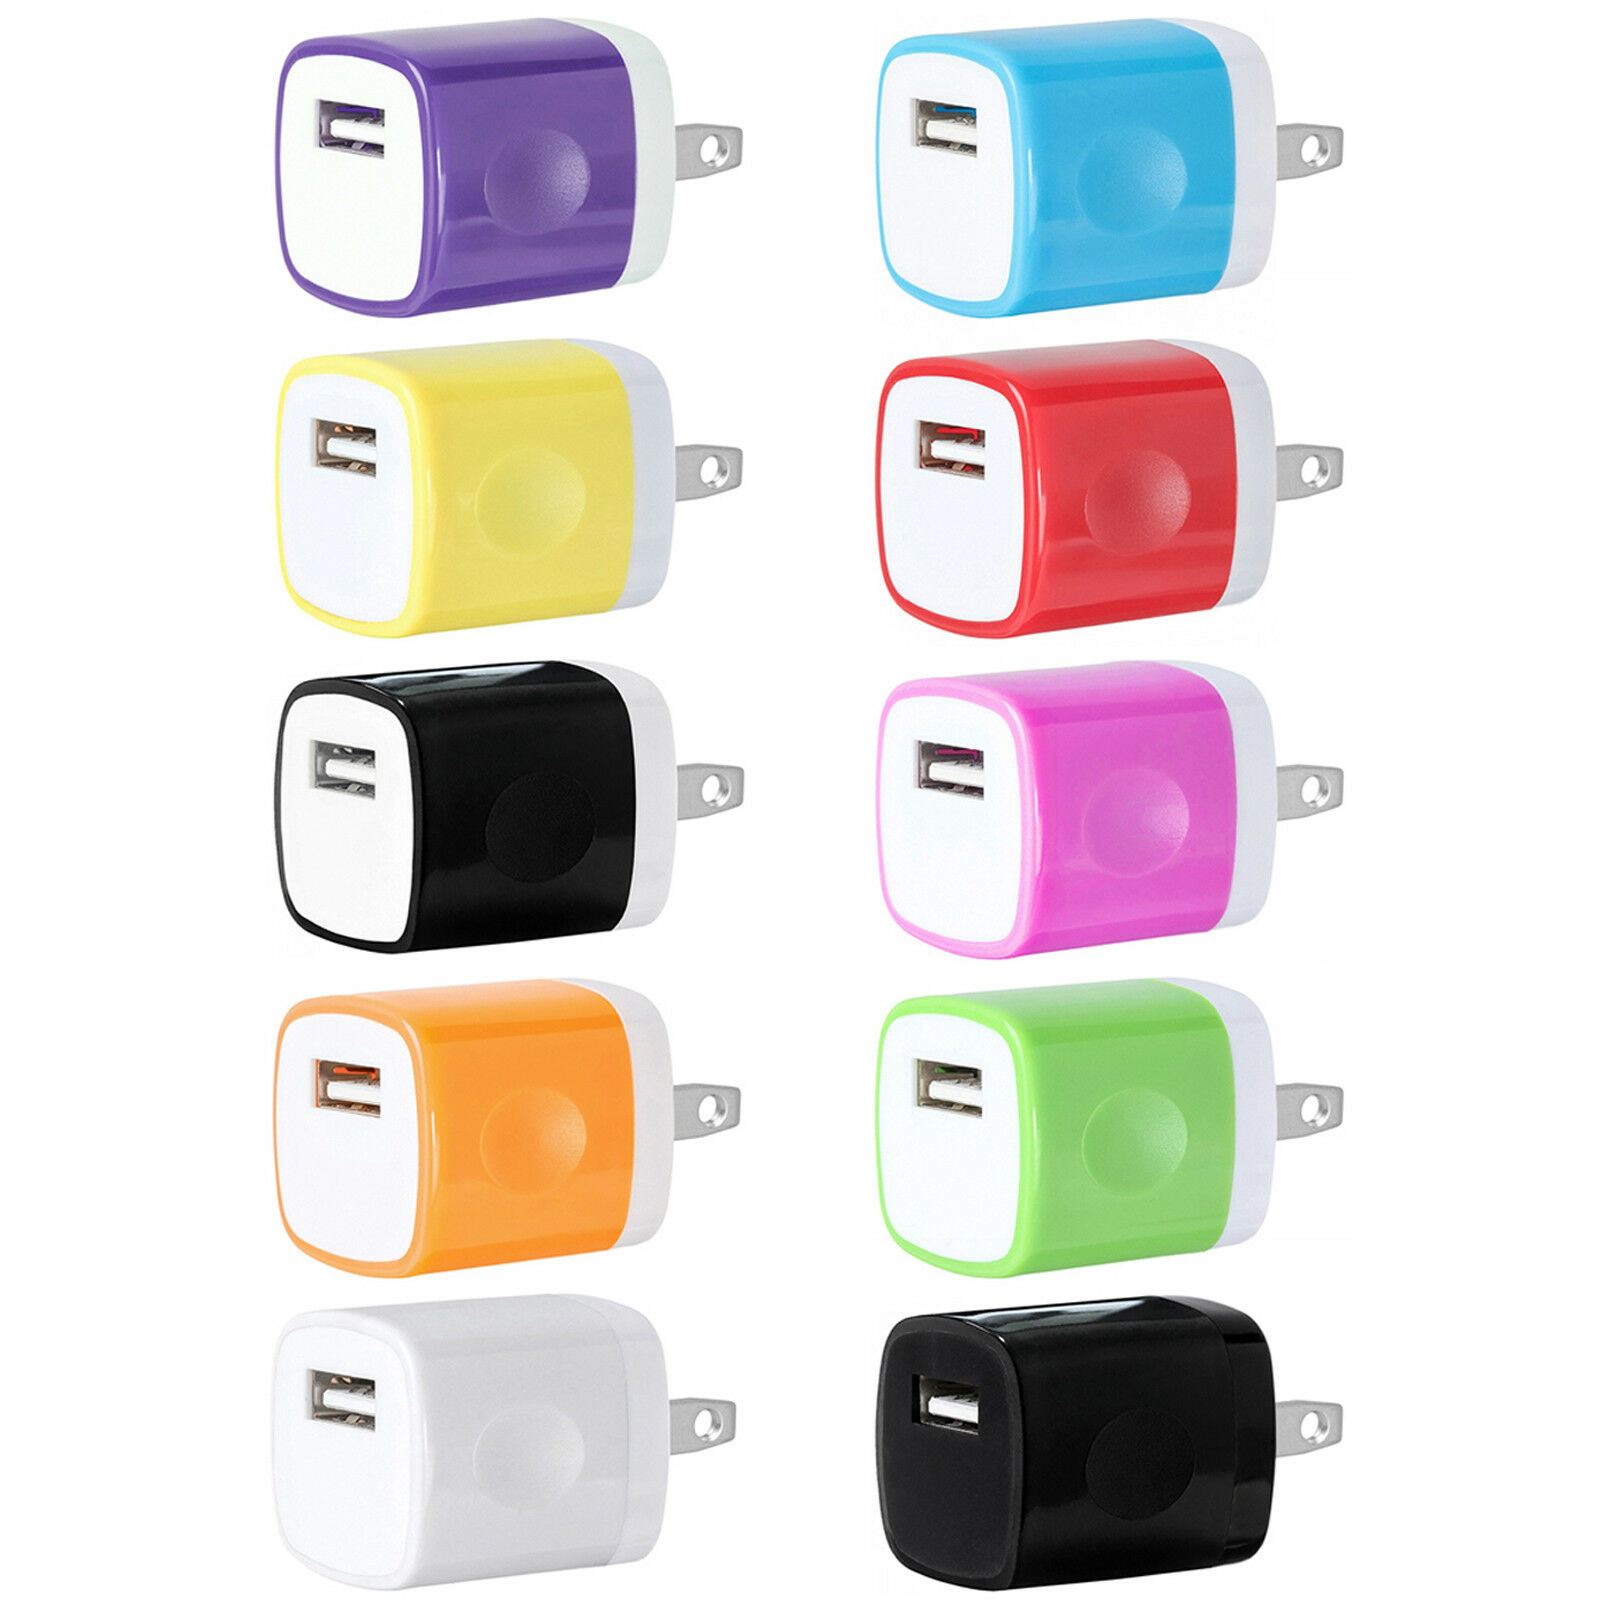 10x PACK USB Wall Charger AC Power Travel Adapter For iPhone